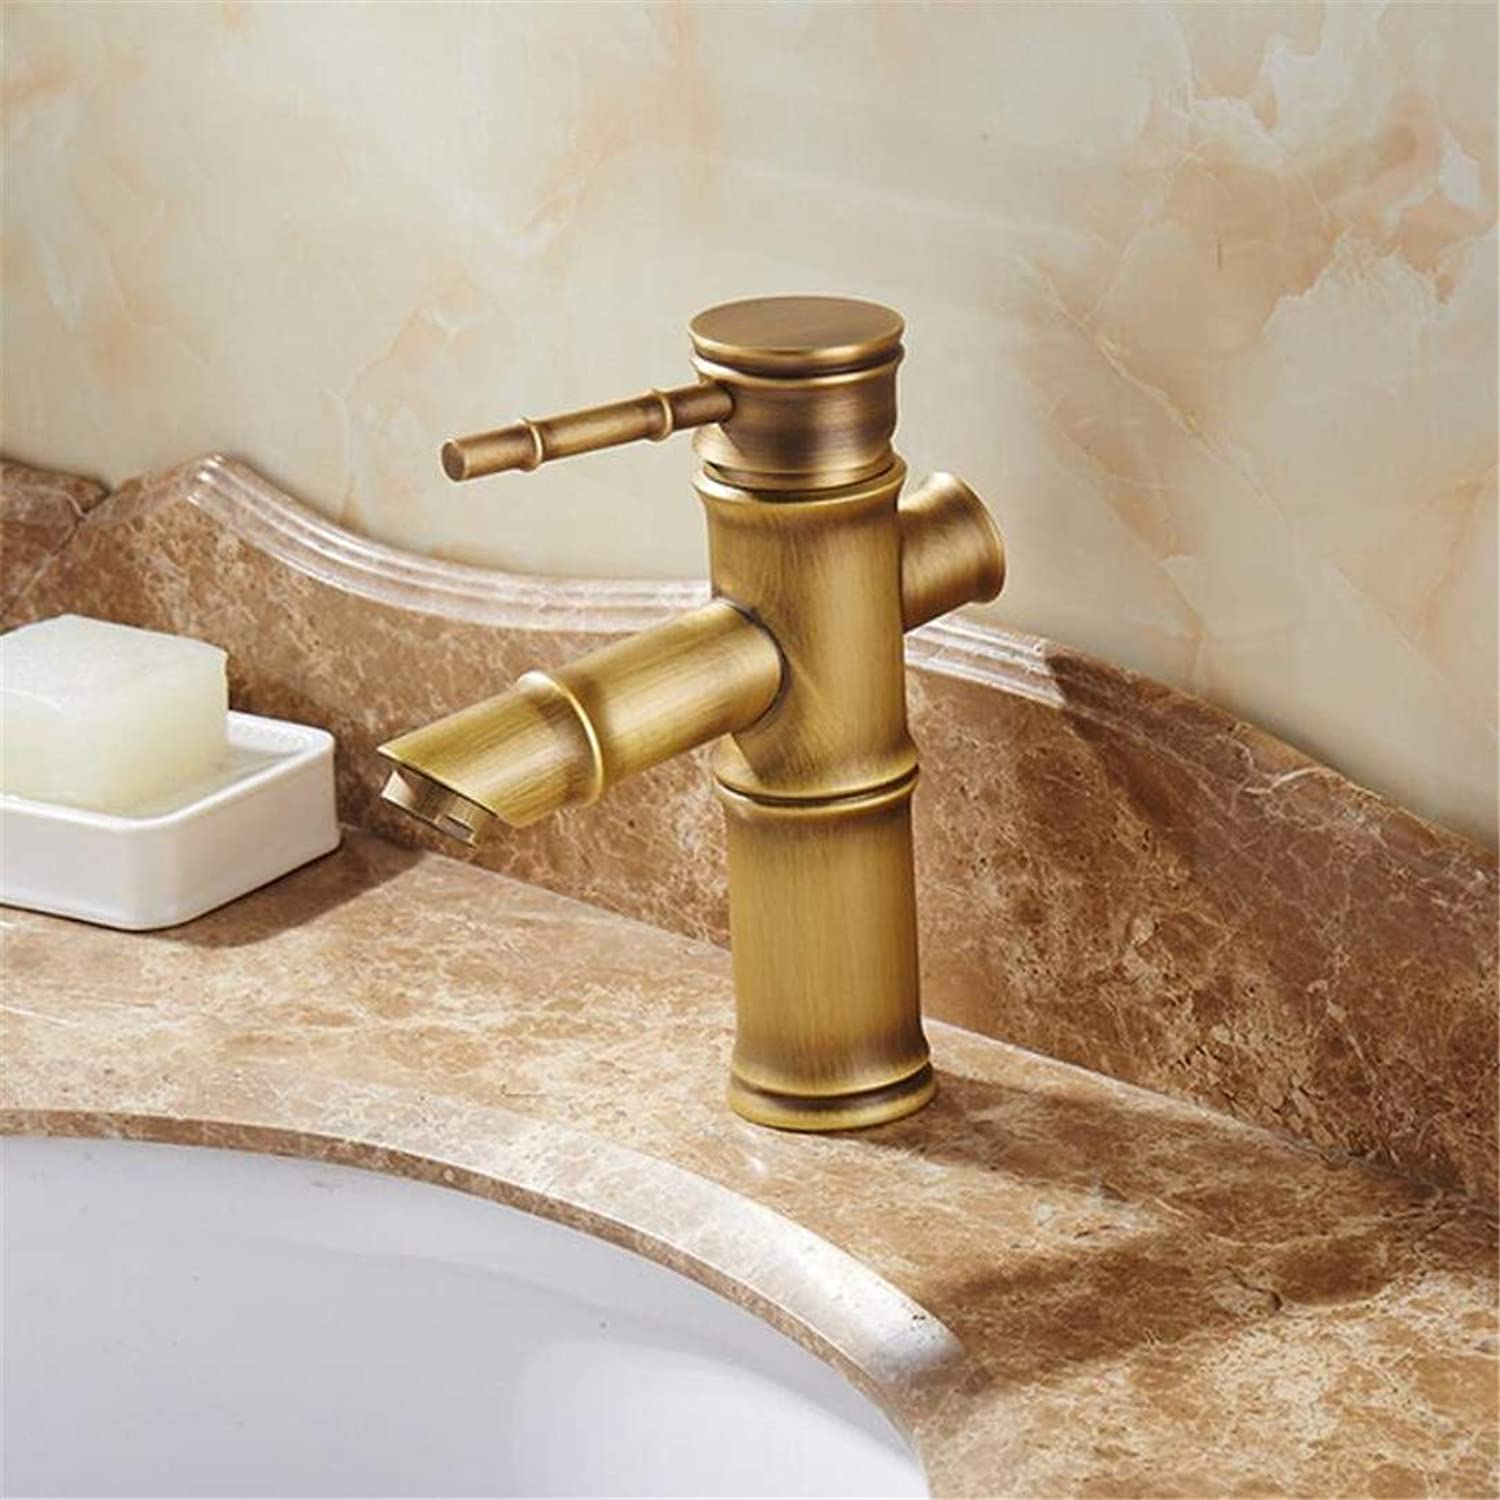 Bathroom Faucet Single Handle Bamboo Water Tap Antique Bronze Finish Brass Basin Sink Faucet Basin Faucet